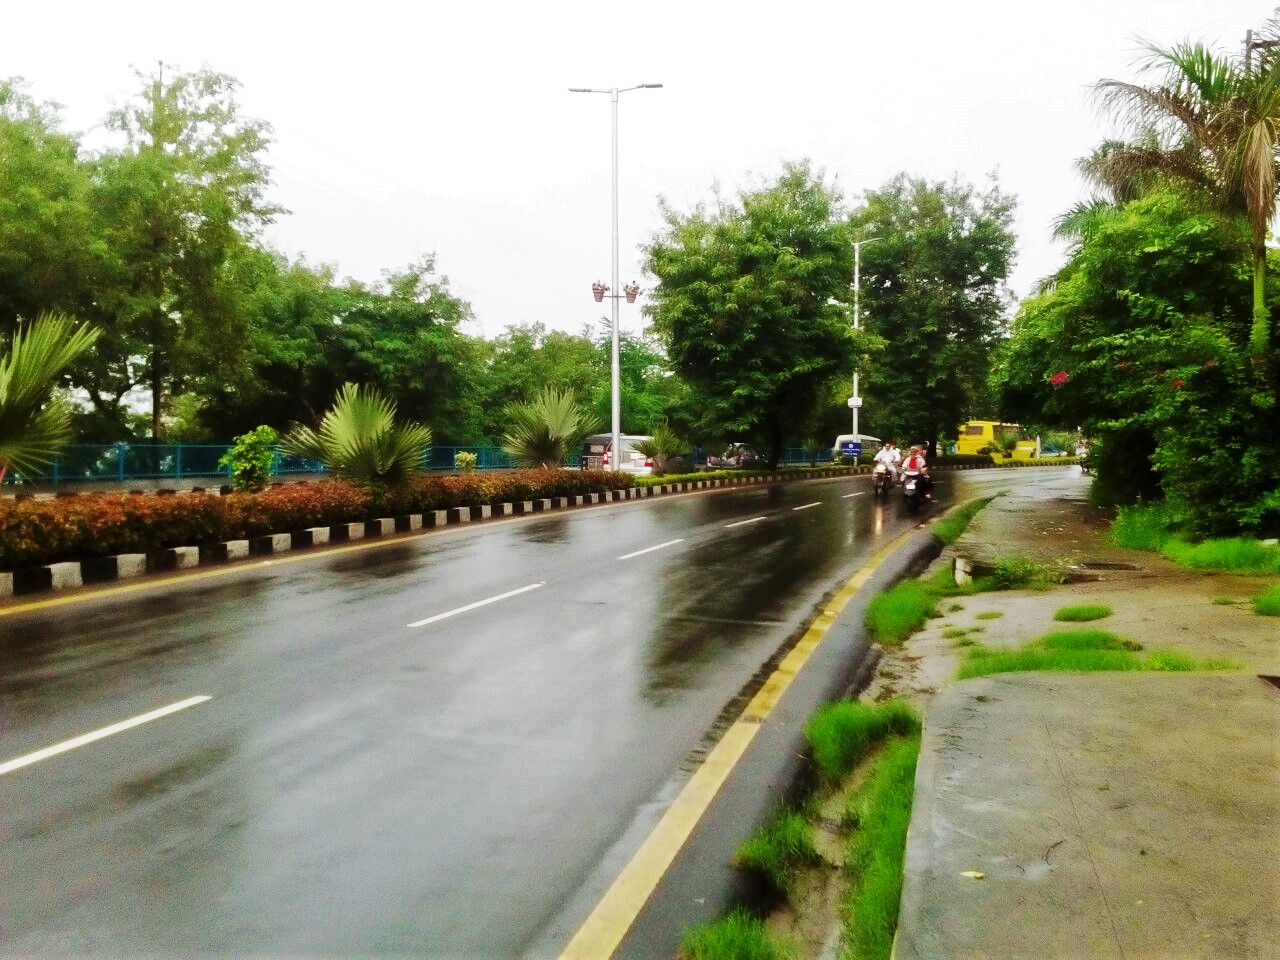 road in bhopal.jpg